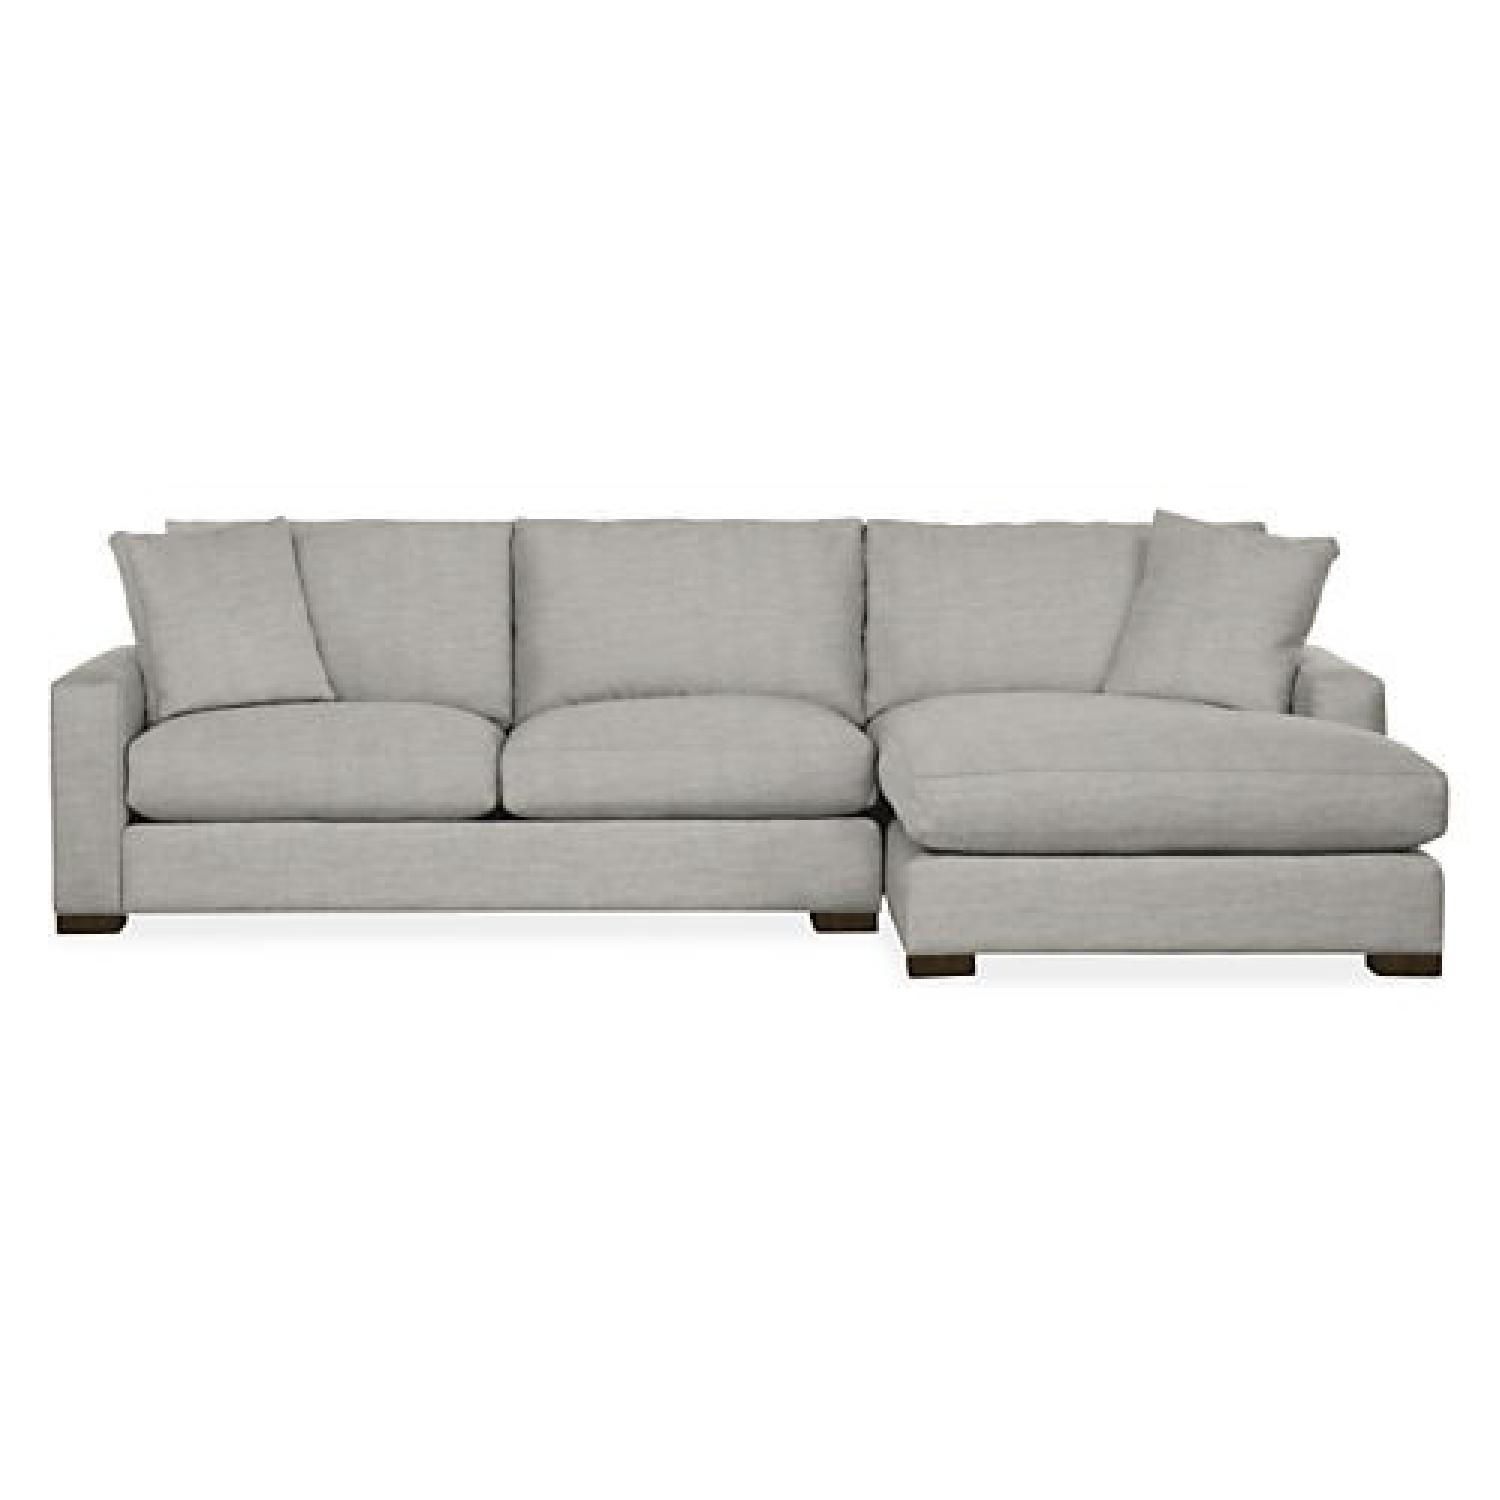 Room & Board Metro Grey Sectional Sofa w/ Right Chaise - image-0